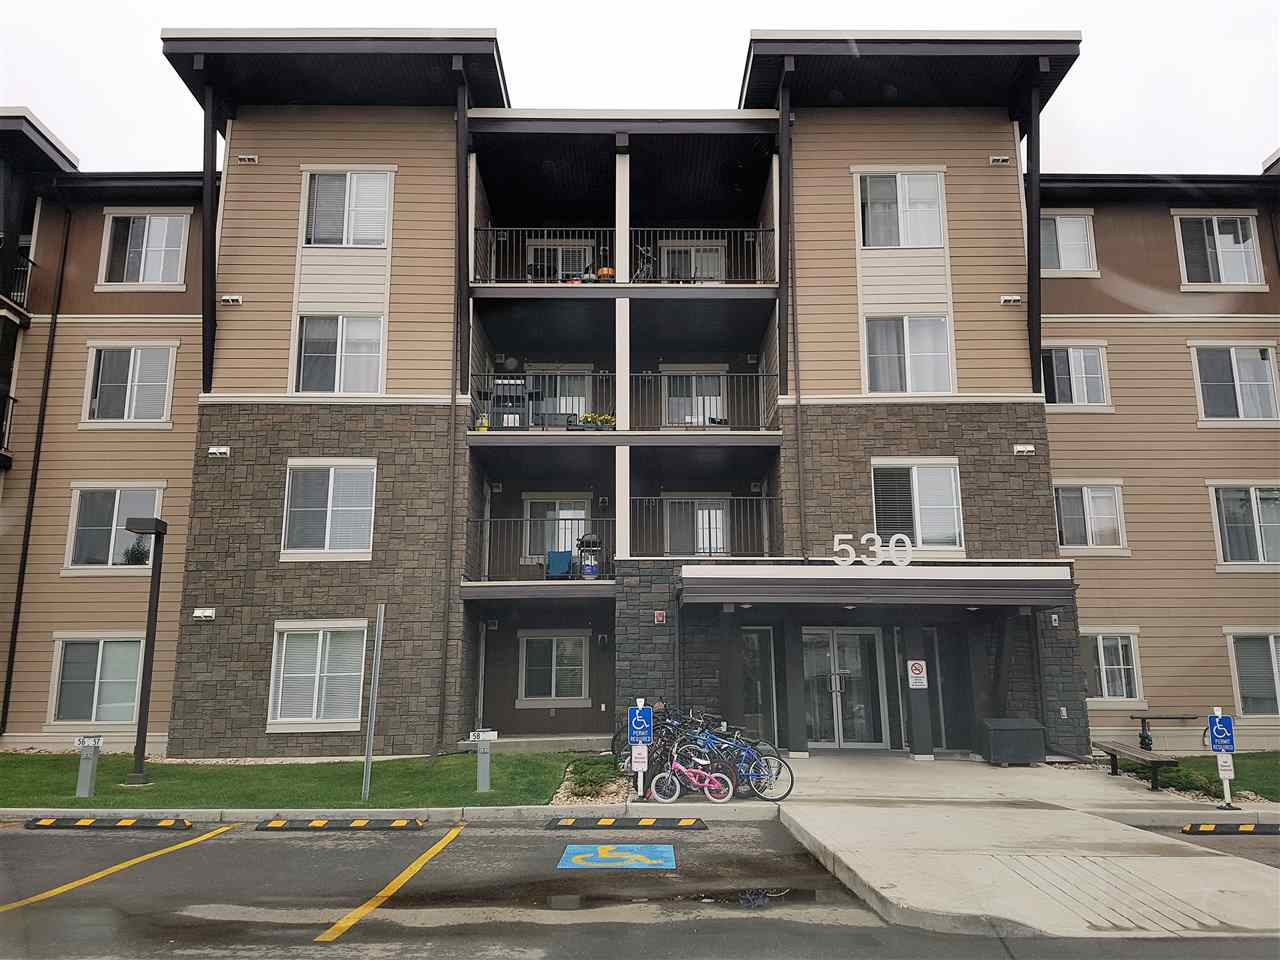 Main Photo: 319 530 WATT Boulevard in Edmonton: Zone 53 Condo for sale : MLS(r) # E4068596